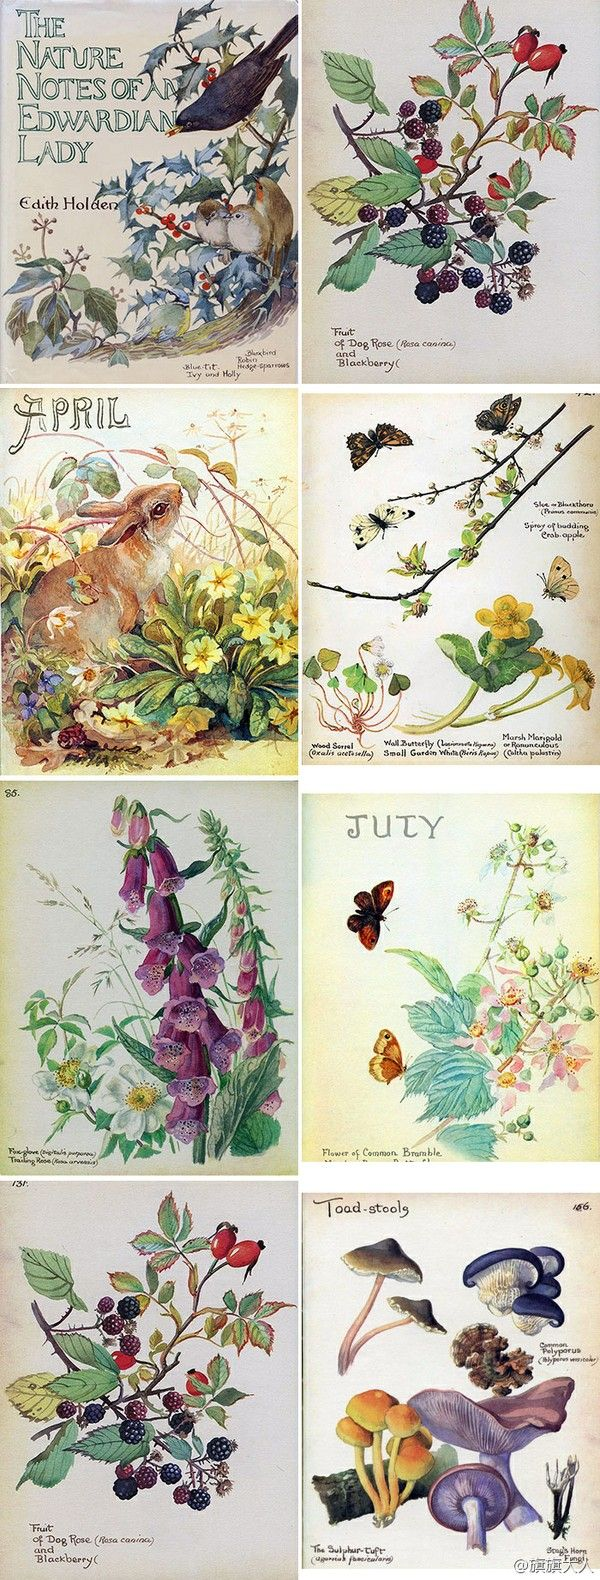 Watercolors from the book, The Nature Notes of an Edwardian Lady.""